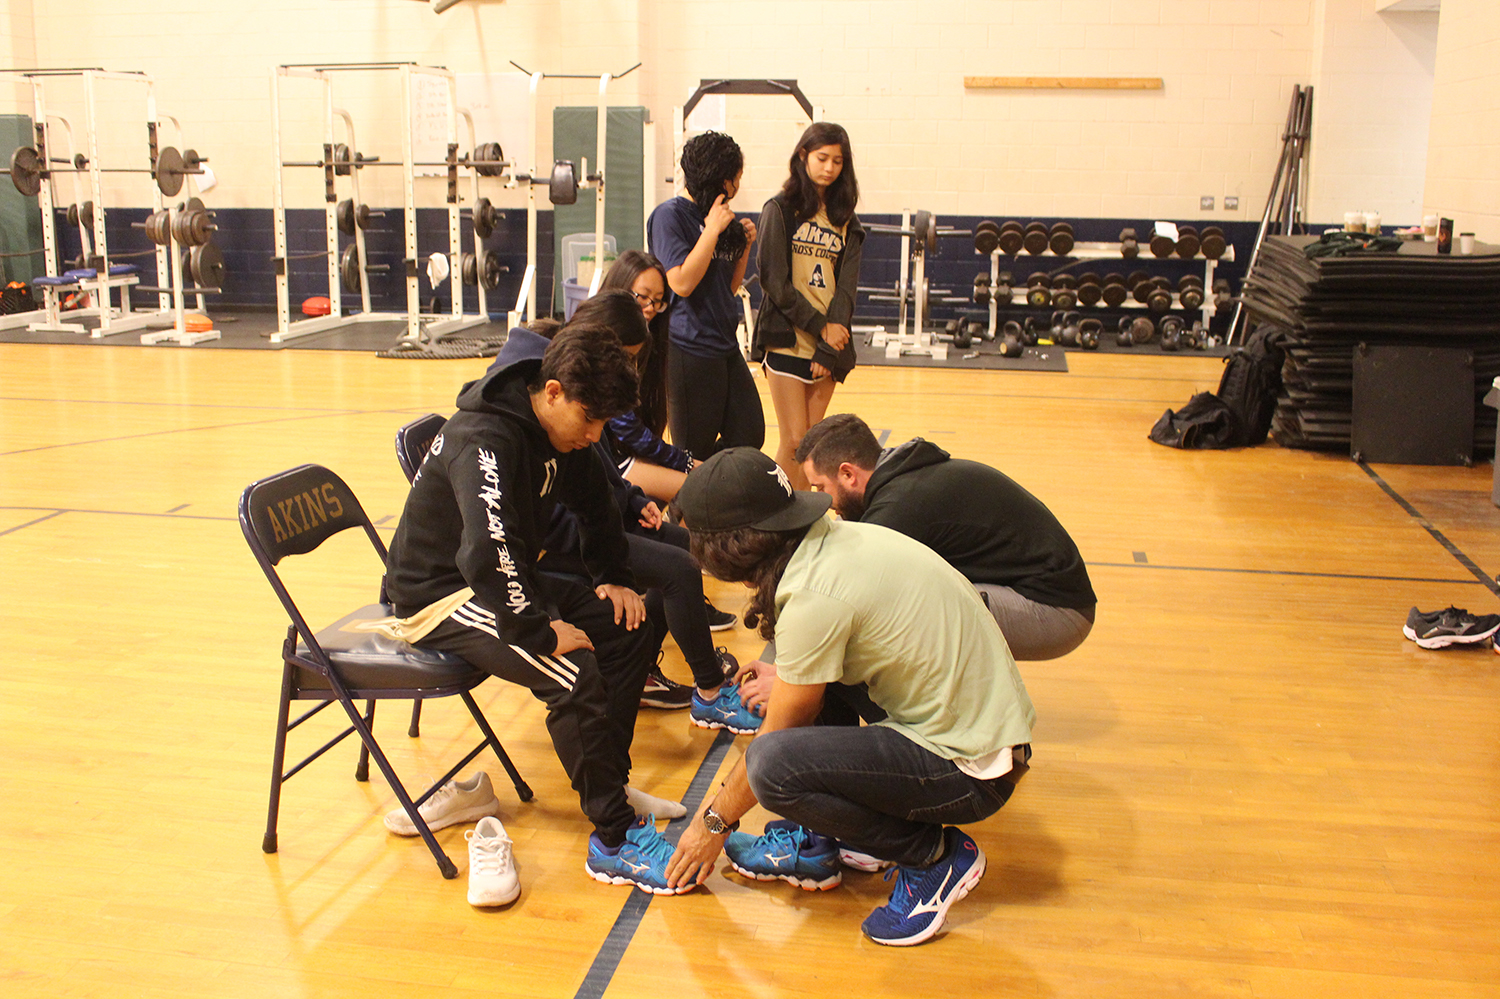 Members of the track team tried on brand new running shoes provided Feet Fleet for the track season in January. The shoes are designed to provide runners with proper support while running.